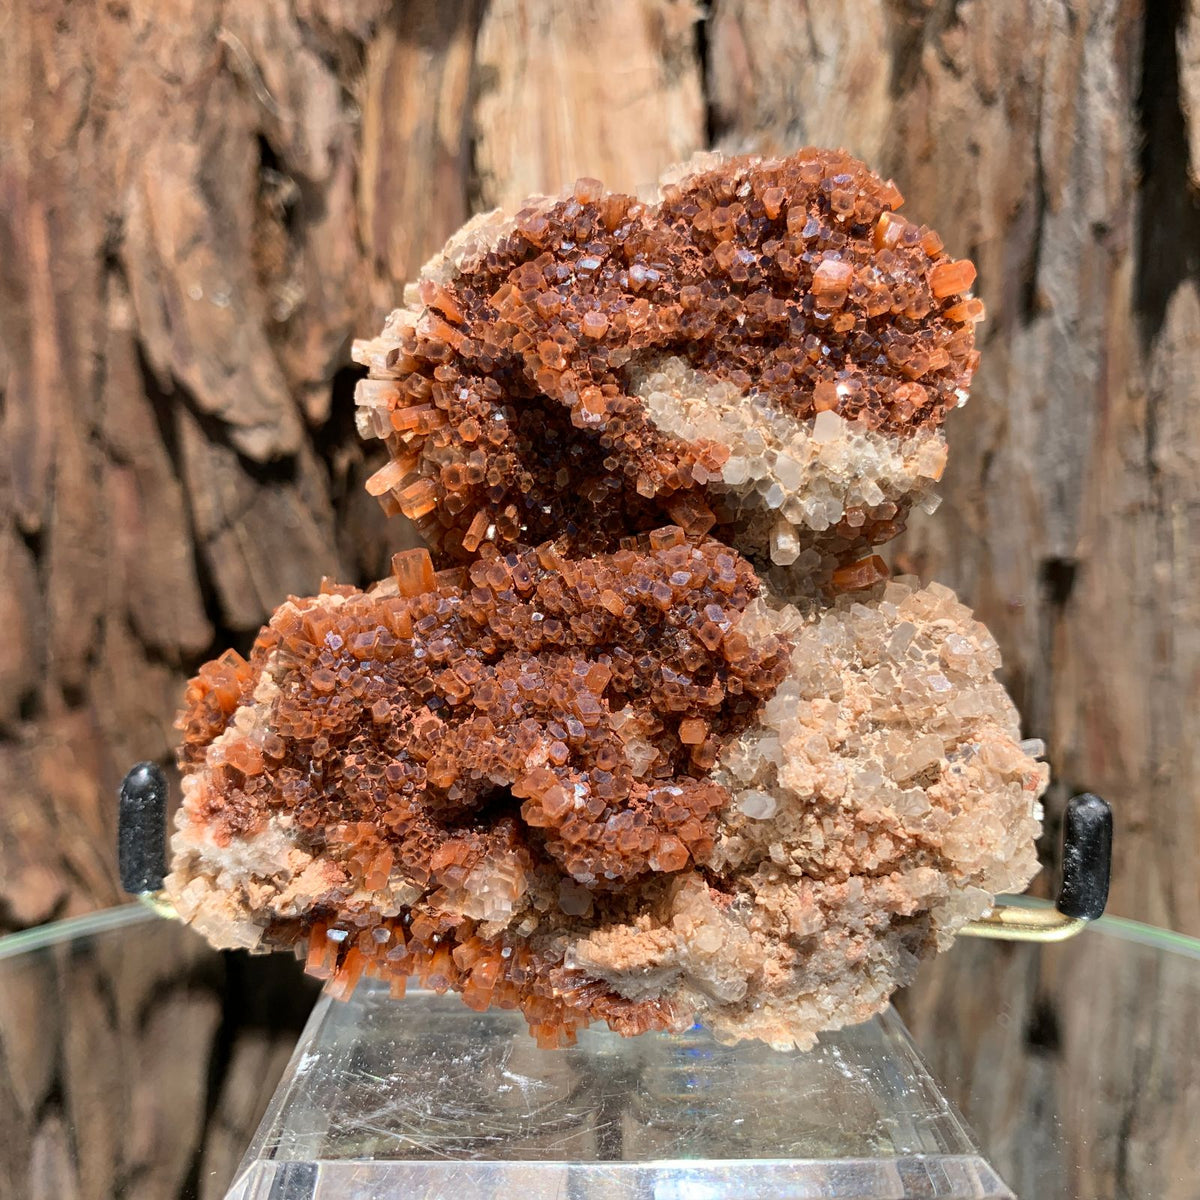 9.5cm 214g Aragonite from Morocco